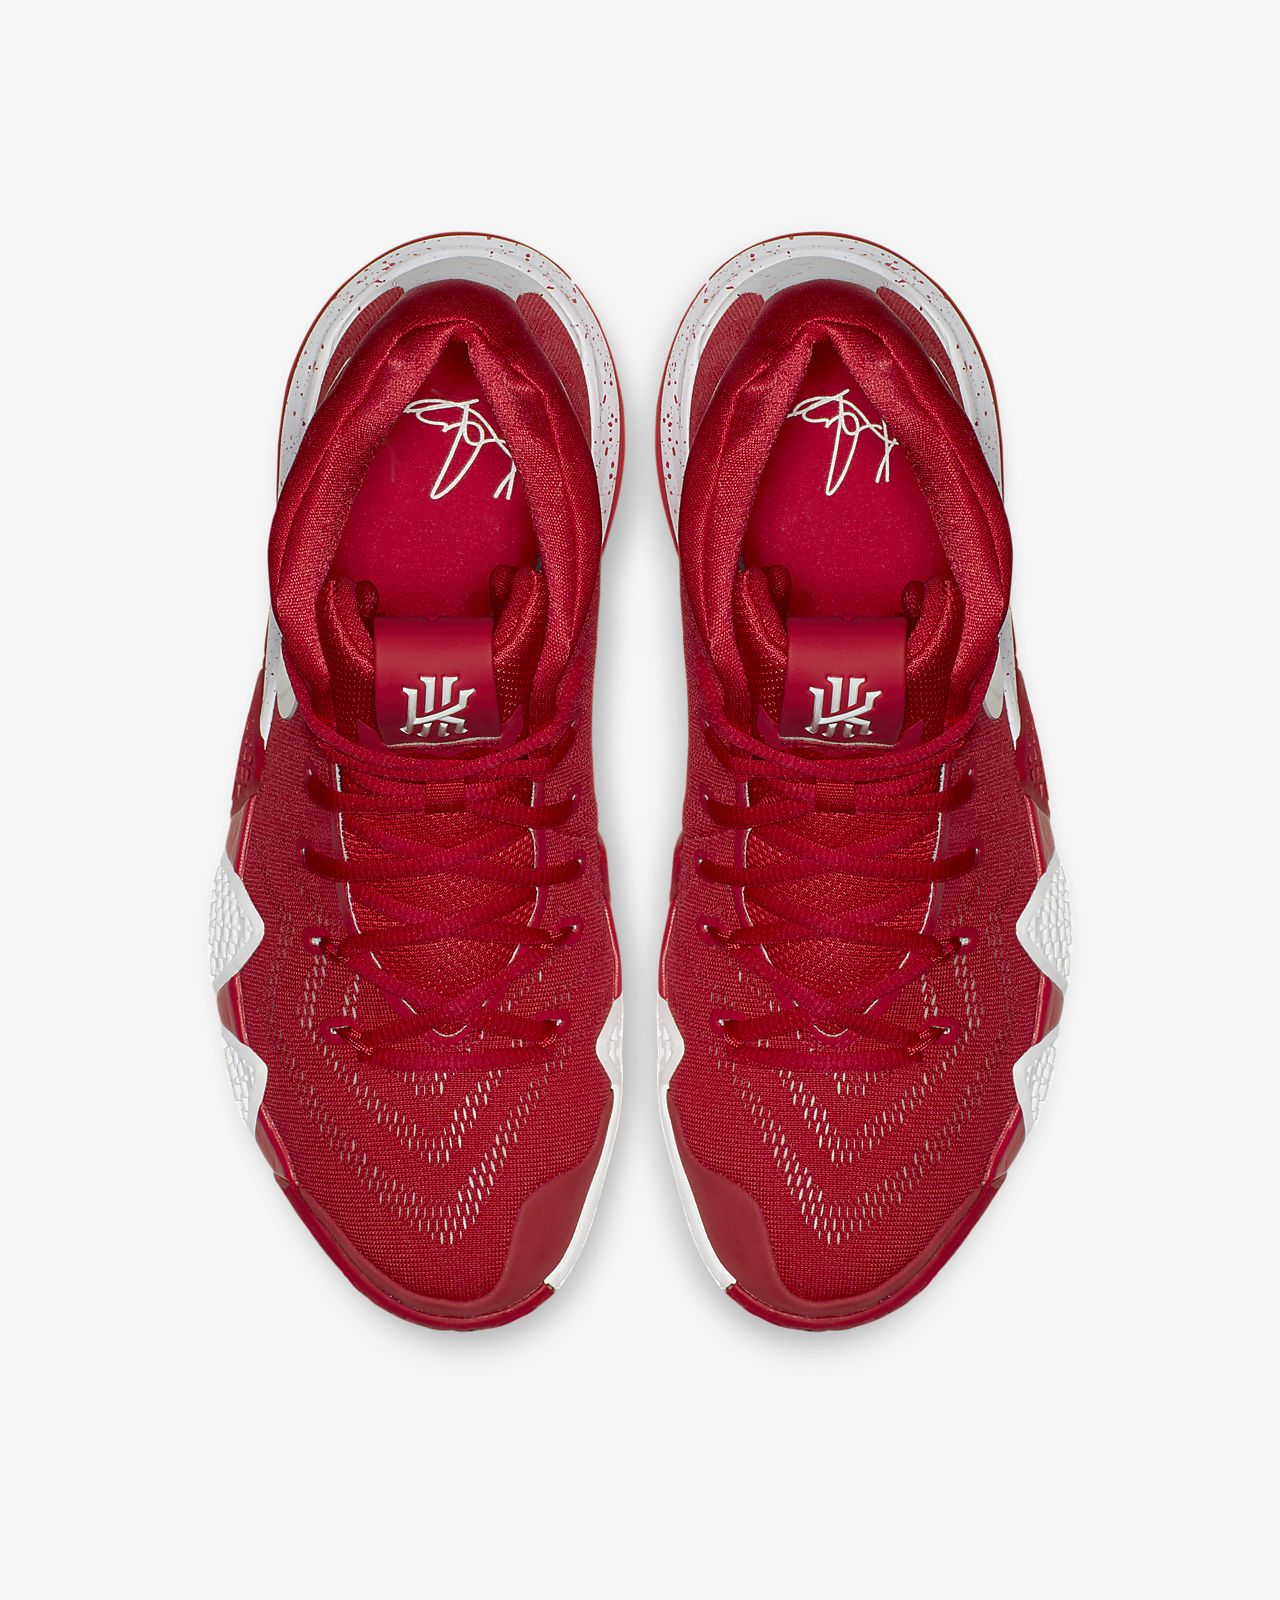 6ab5bd3a98bb Kyrie 4 (Team) Basketball Shoe. Nike.com